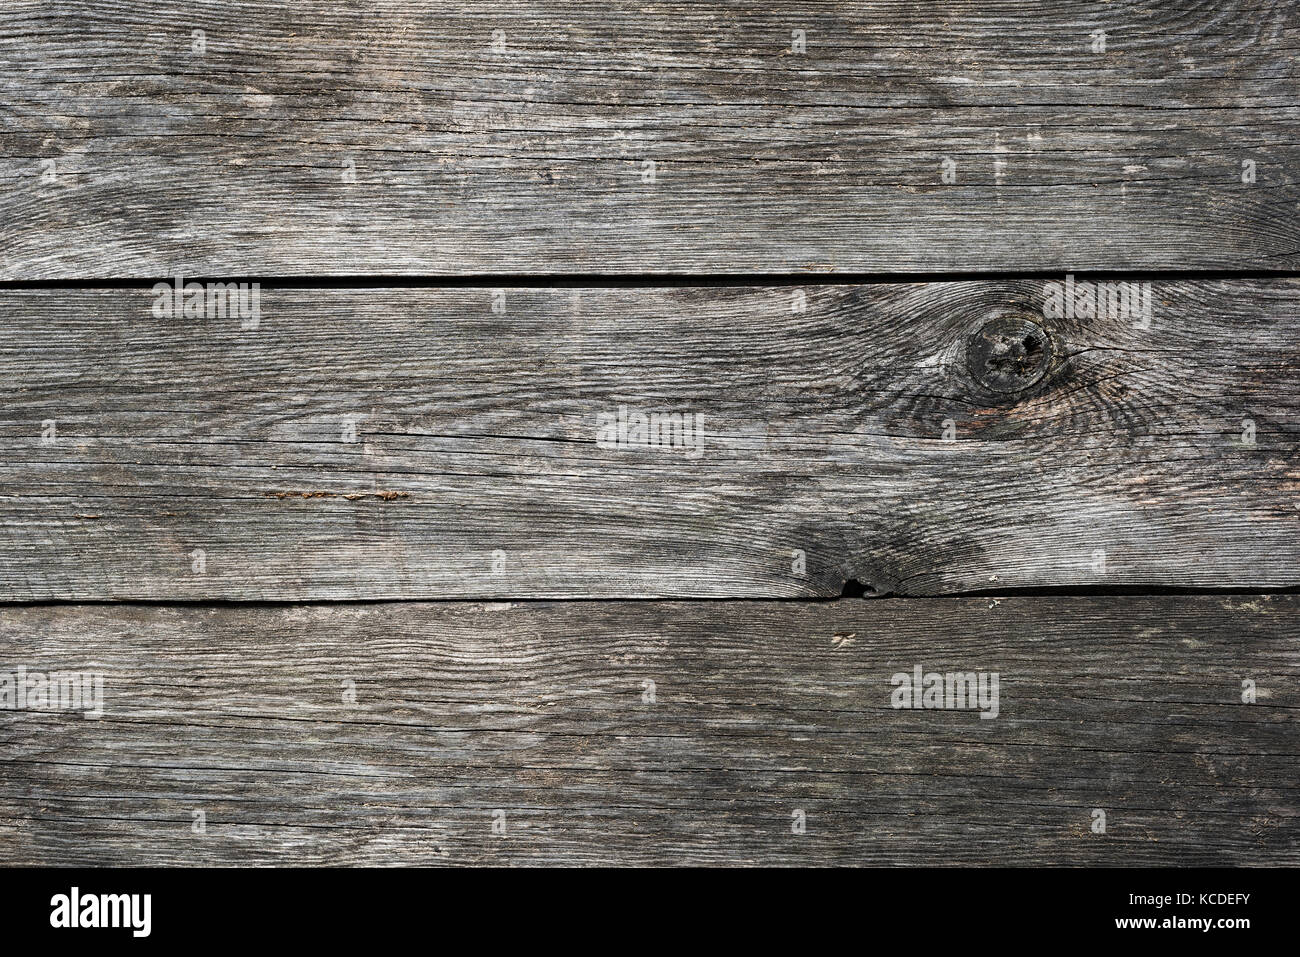 Grey wooden background texture. Wooden planks. Horizontal view Stock Photo